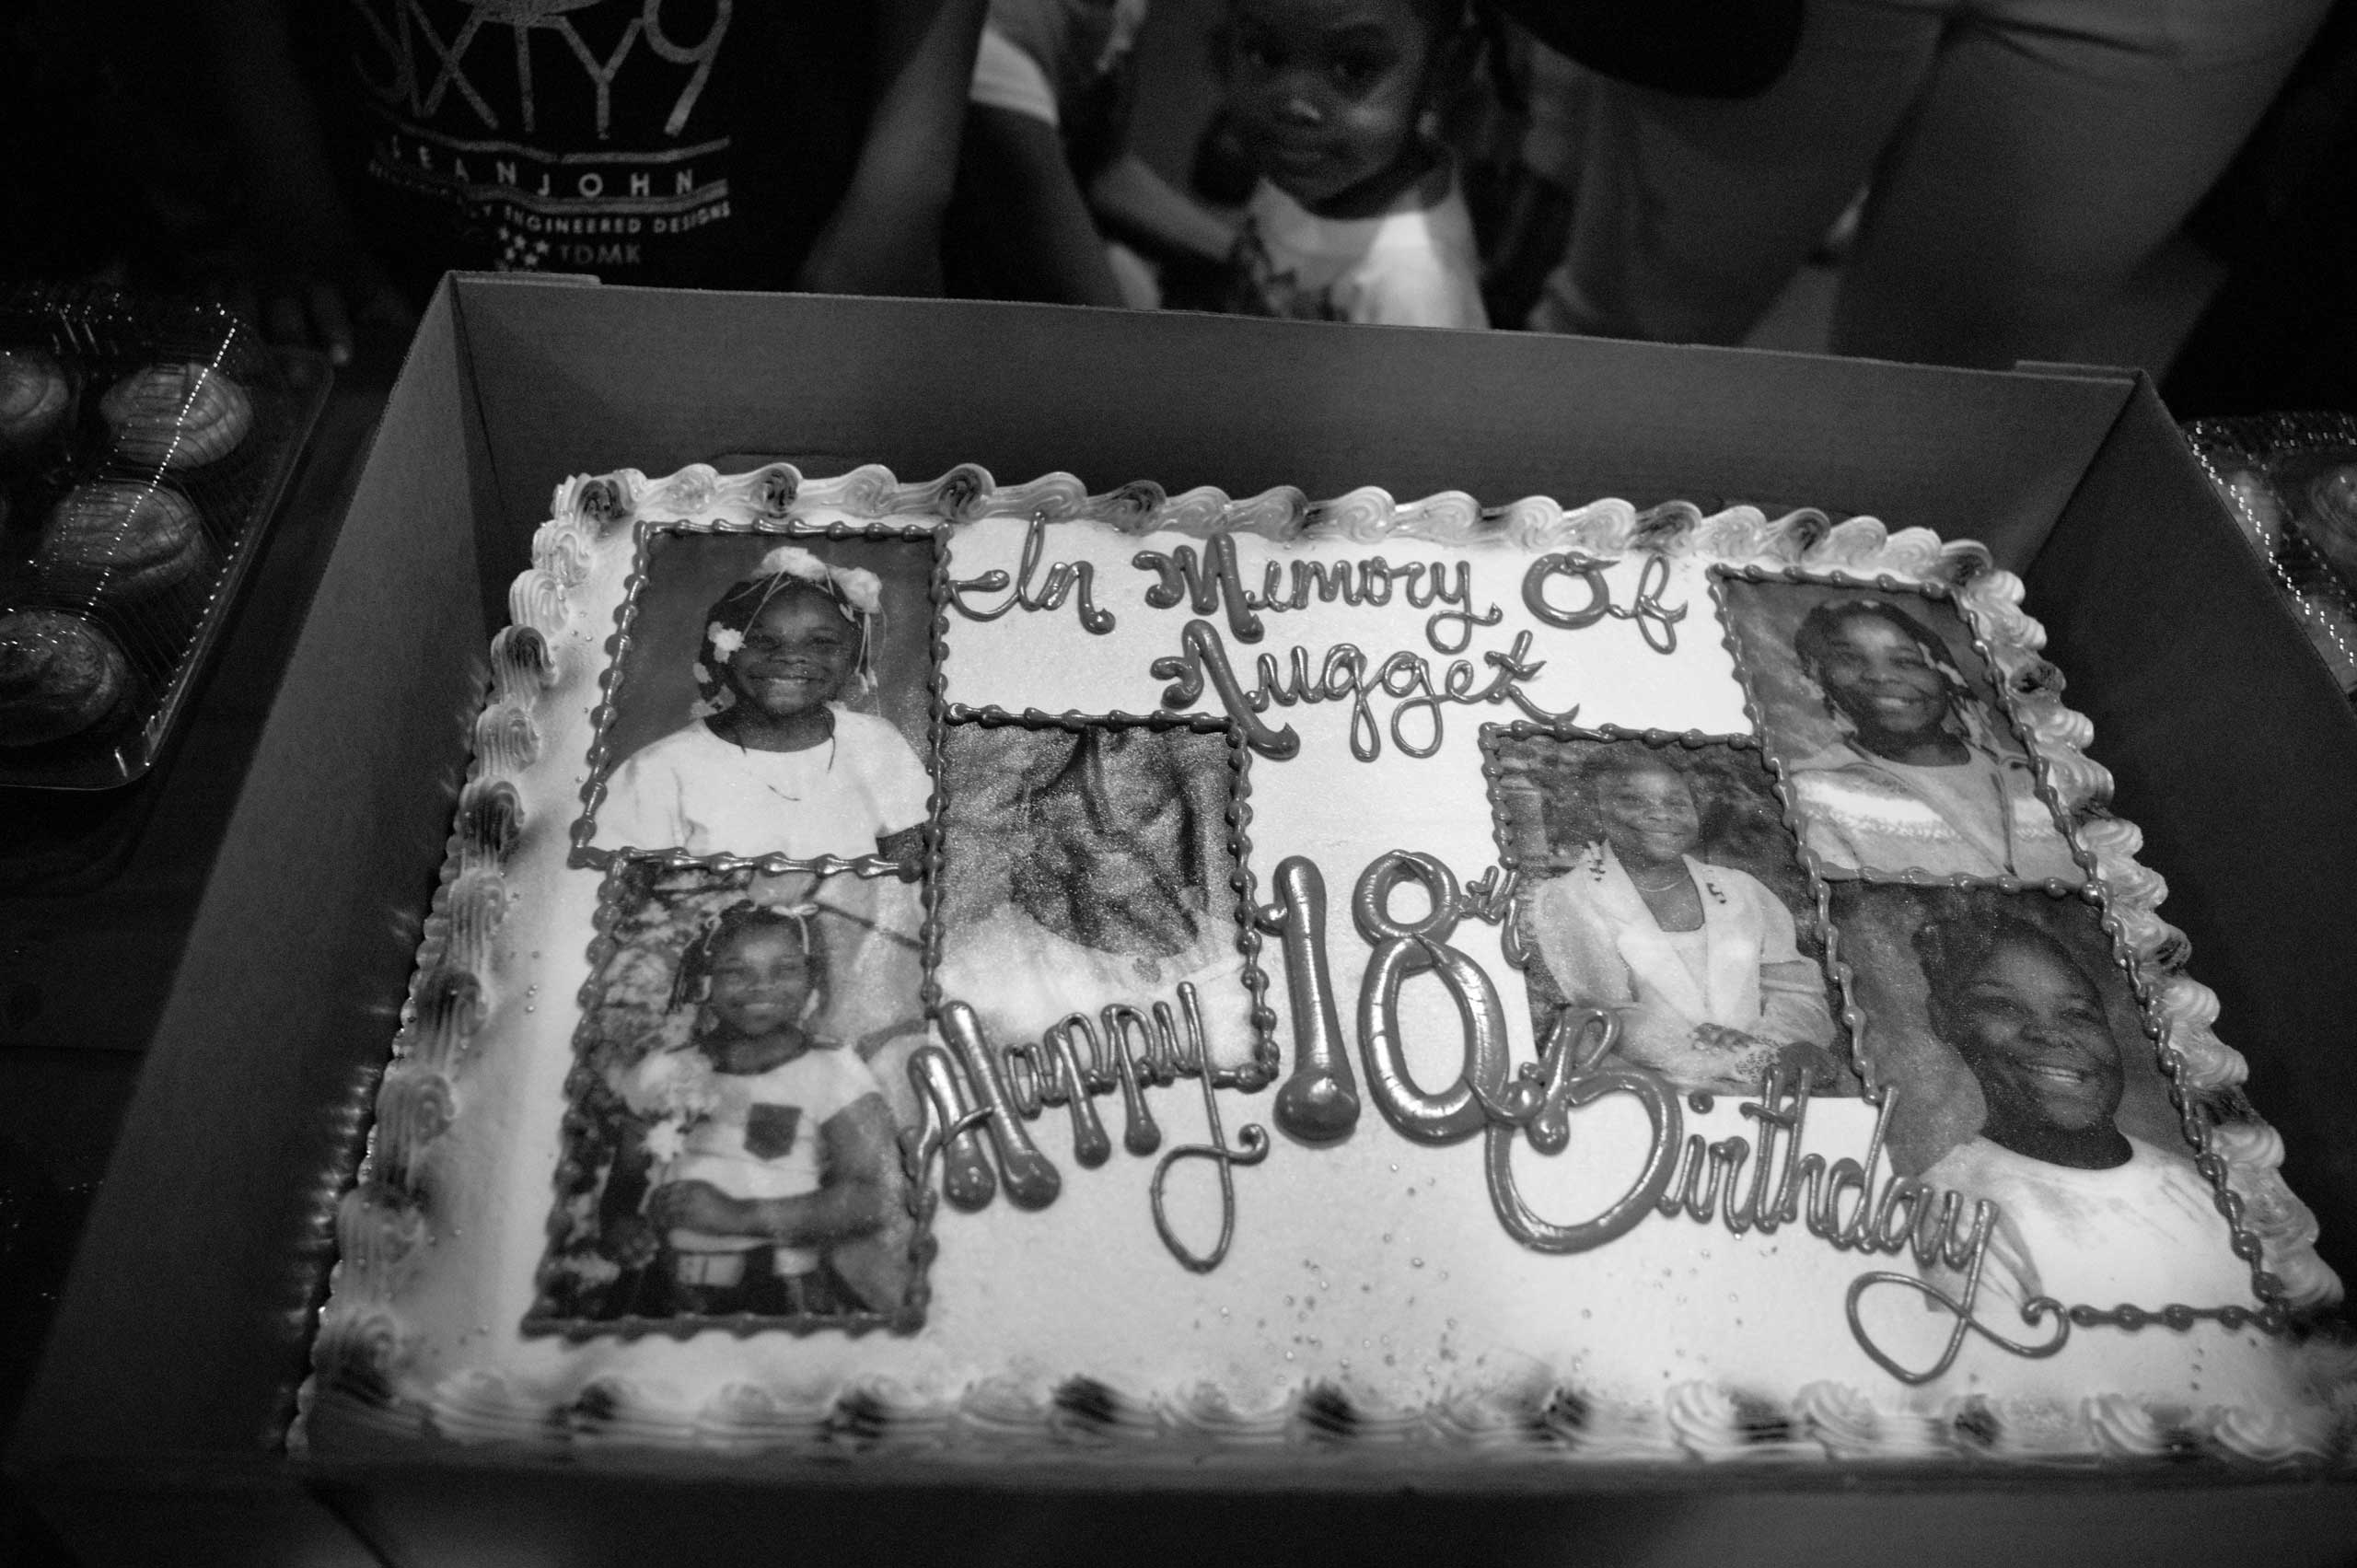 In Memory of Nugget. Seven years after the death of Siretha White, her family celebrates her birthday. She would have been 18 years old that March. Siretha's family never got to cut the cake at her 11th birthday party, the day she was killed. Englewood, Chicago, 2013.                                                                      Side caption: Siretha White's cake, on what would have been her 18th birthday.